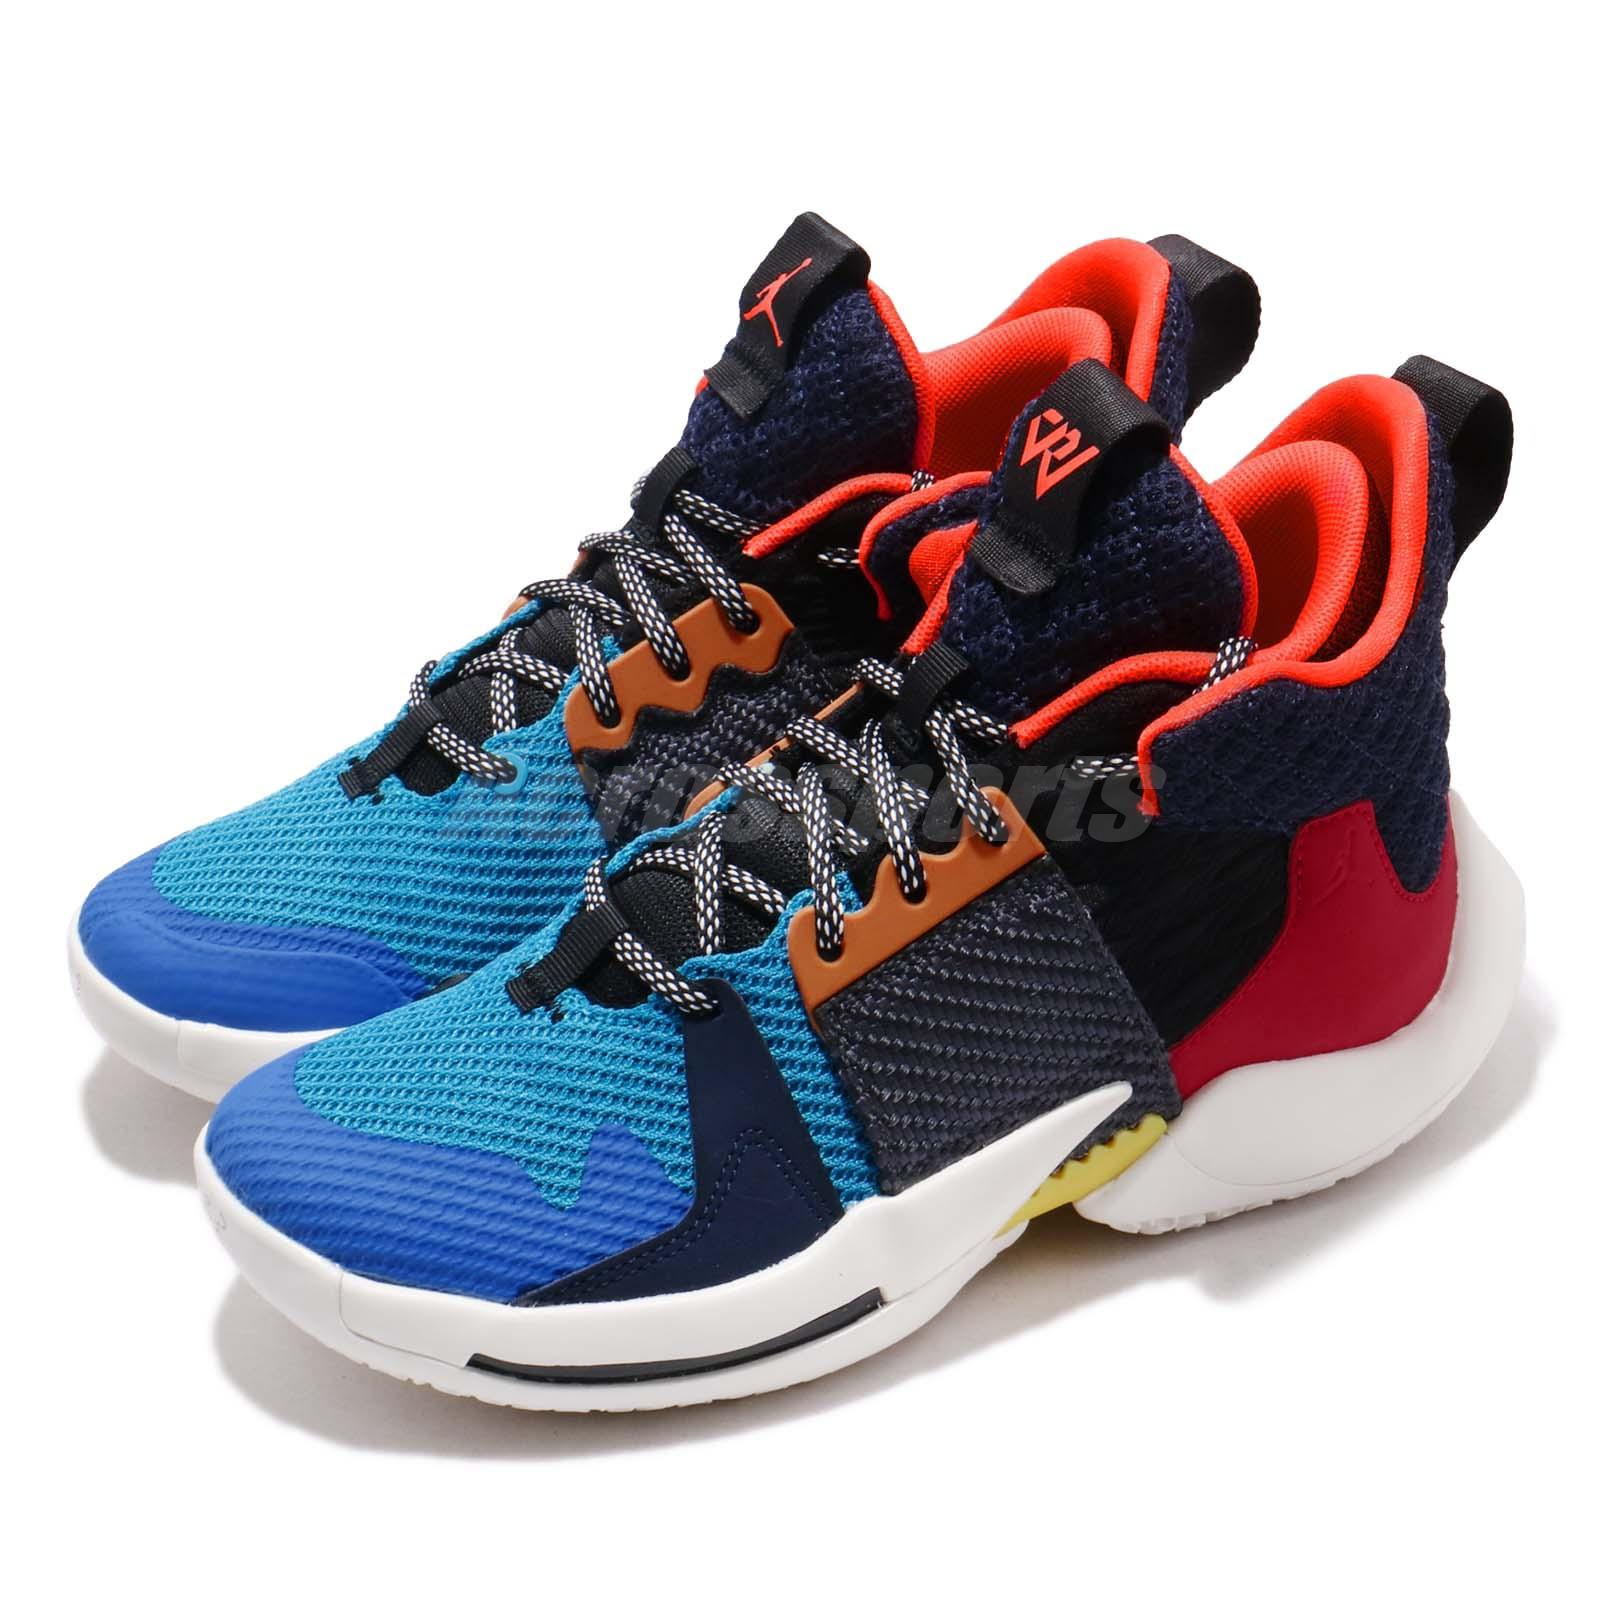 buy popular 010f3 c6024 Details about Nike Jordan Why Not Zer0.2 GS Multi-Color Russell Westbrook  Kid Women AO6218-900